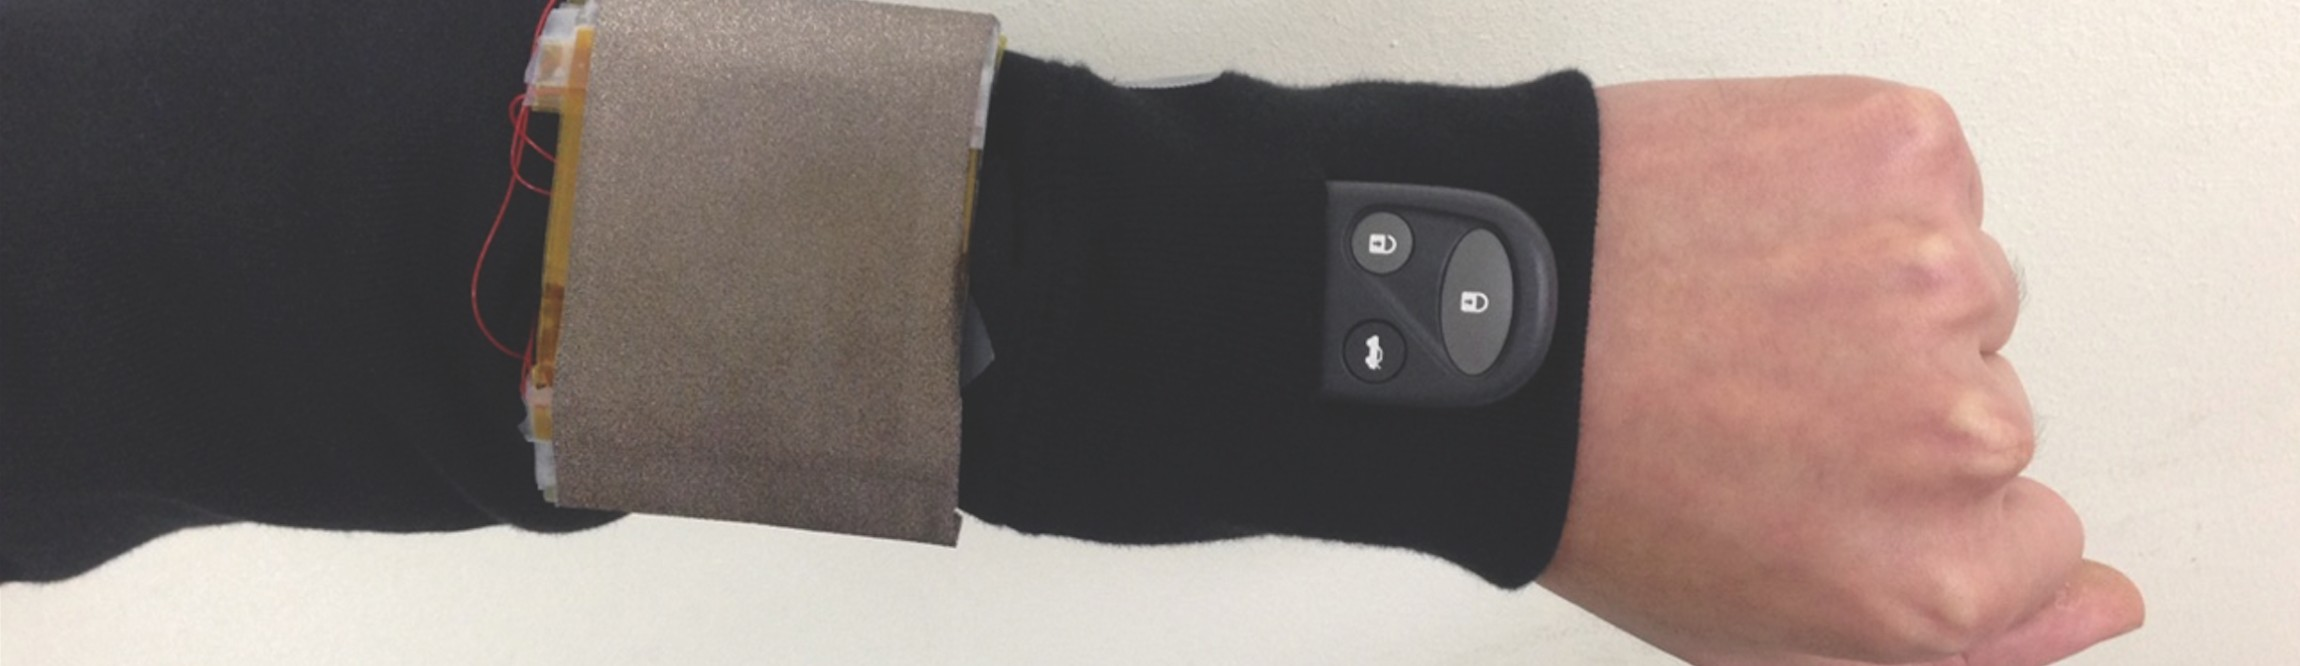 How Motion-Powered Fabric Could Charge Gadgets